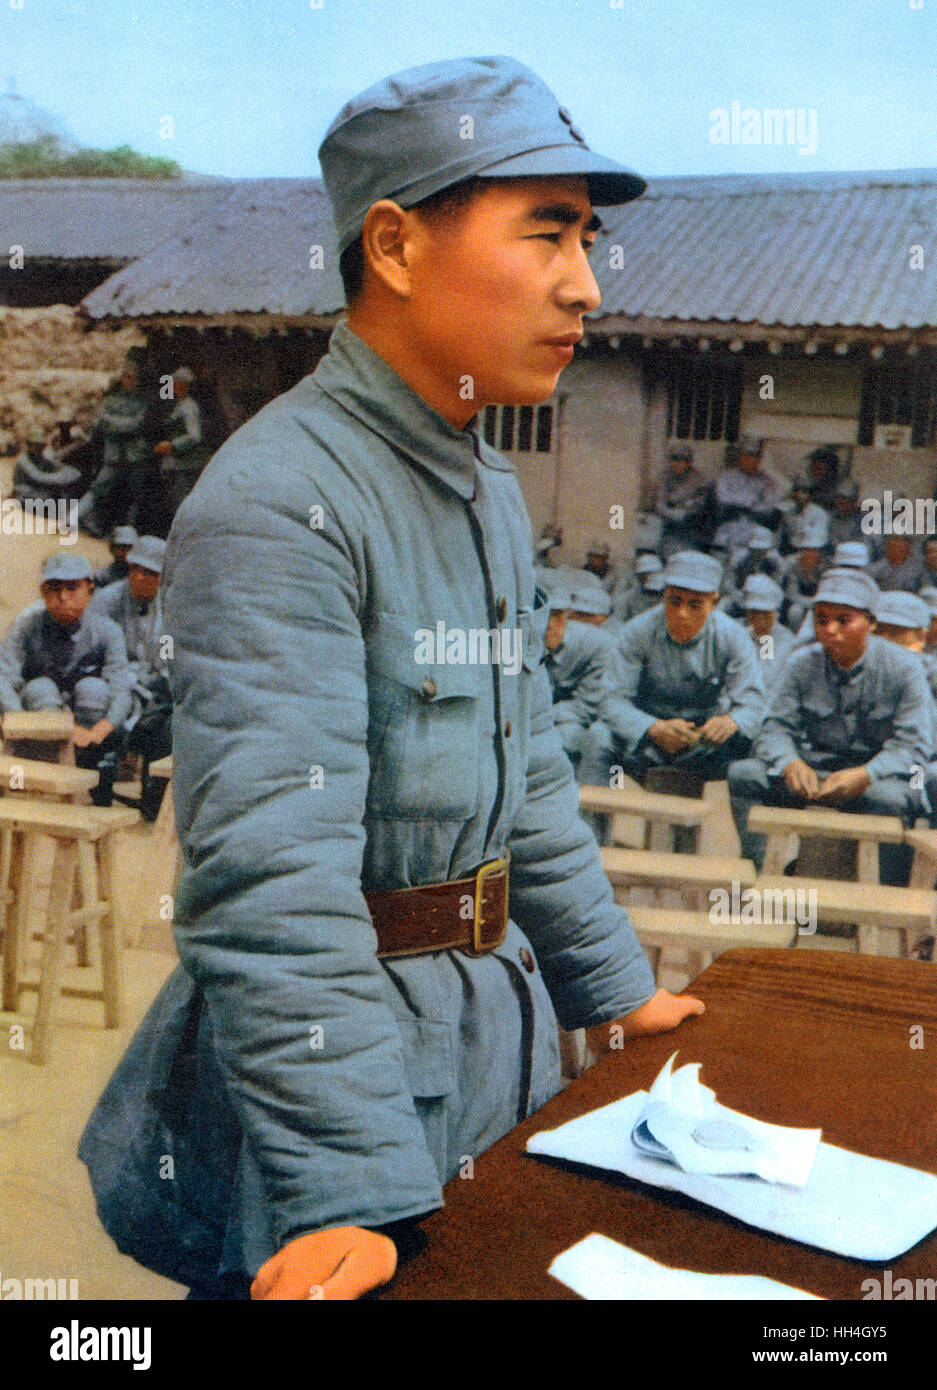 Lin Biao (1907-1971), one of Mao Zedong's closest supporters.  Seen here giving a speech to Chinese soldiers - Stock Image